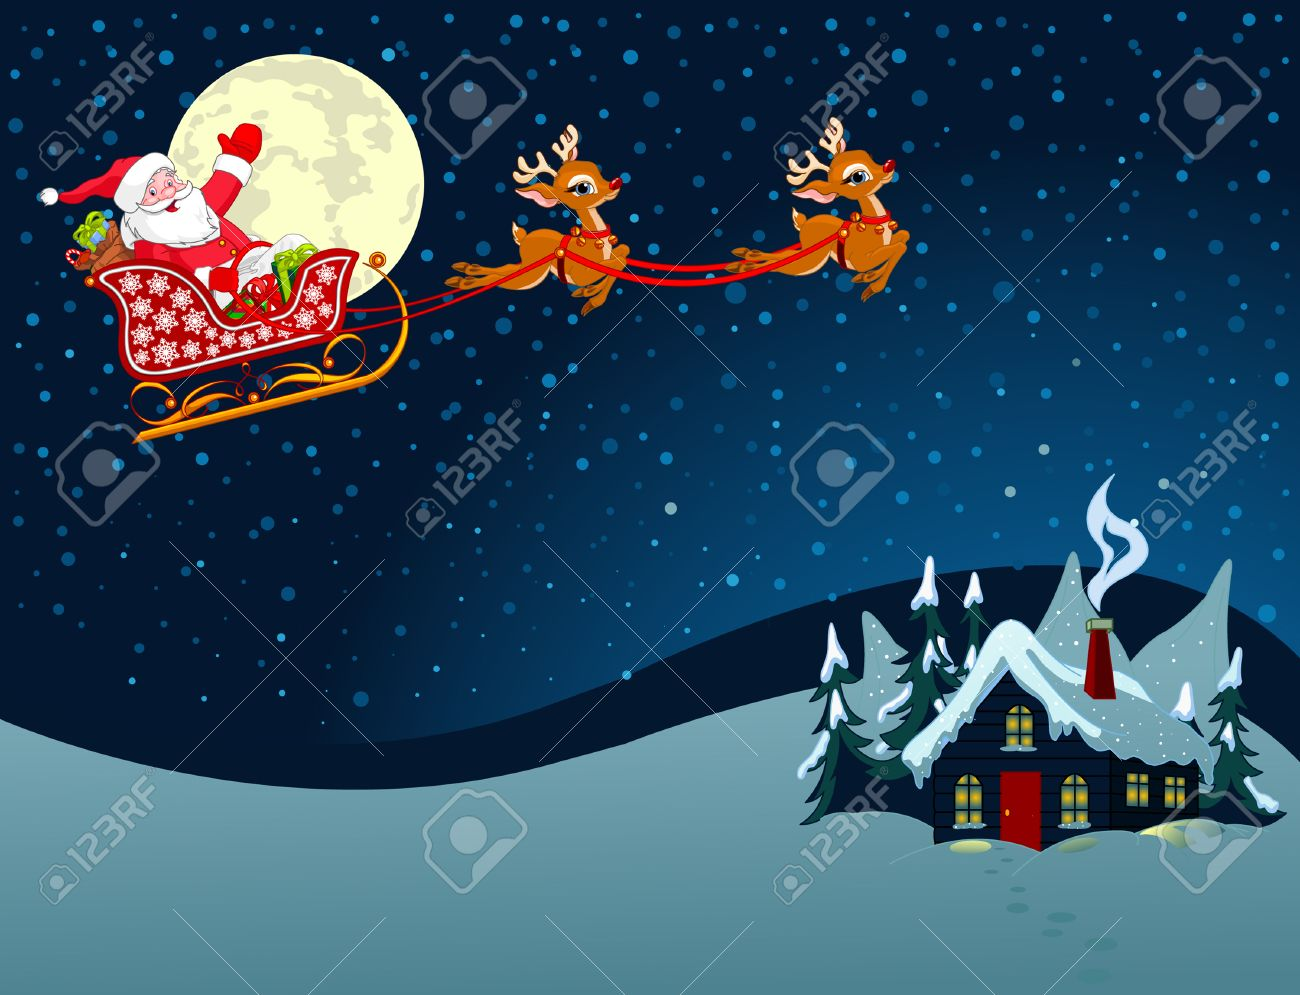 cartoon illustration of santa claus in his sleigh royalty free